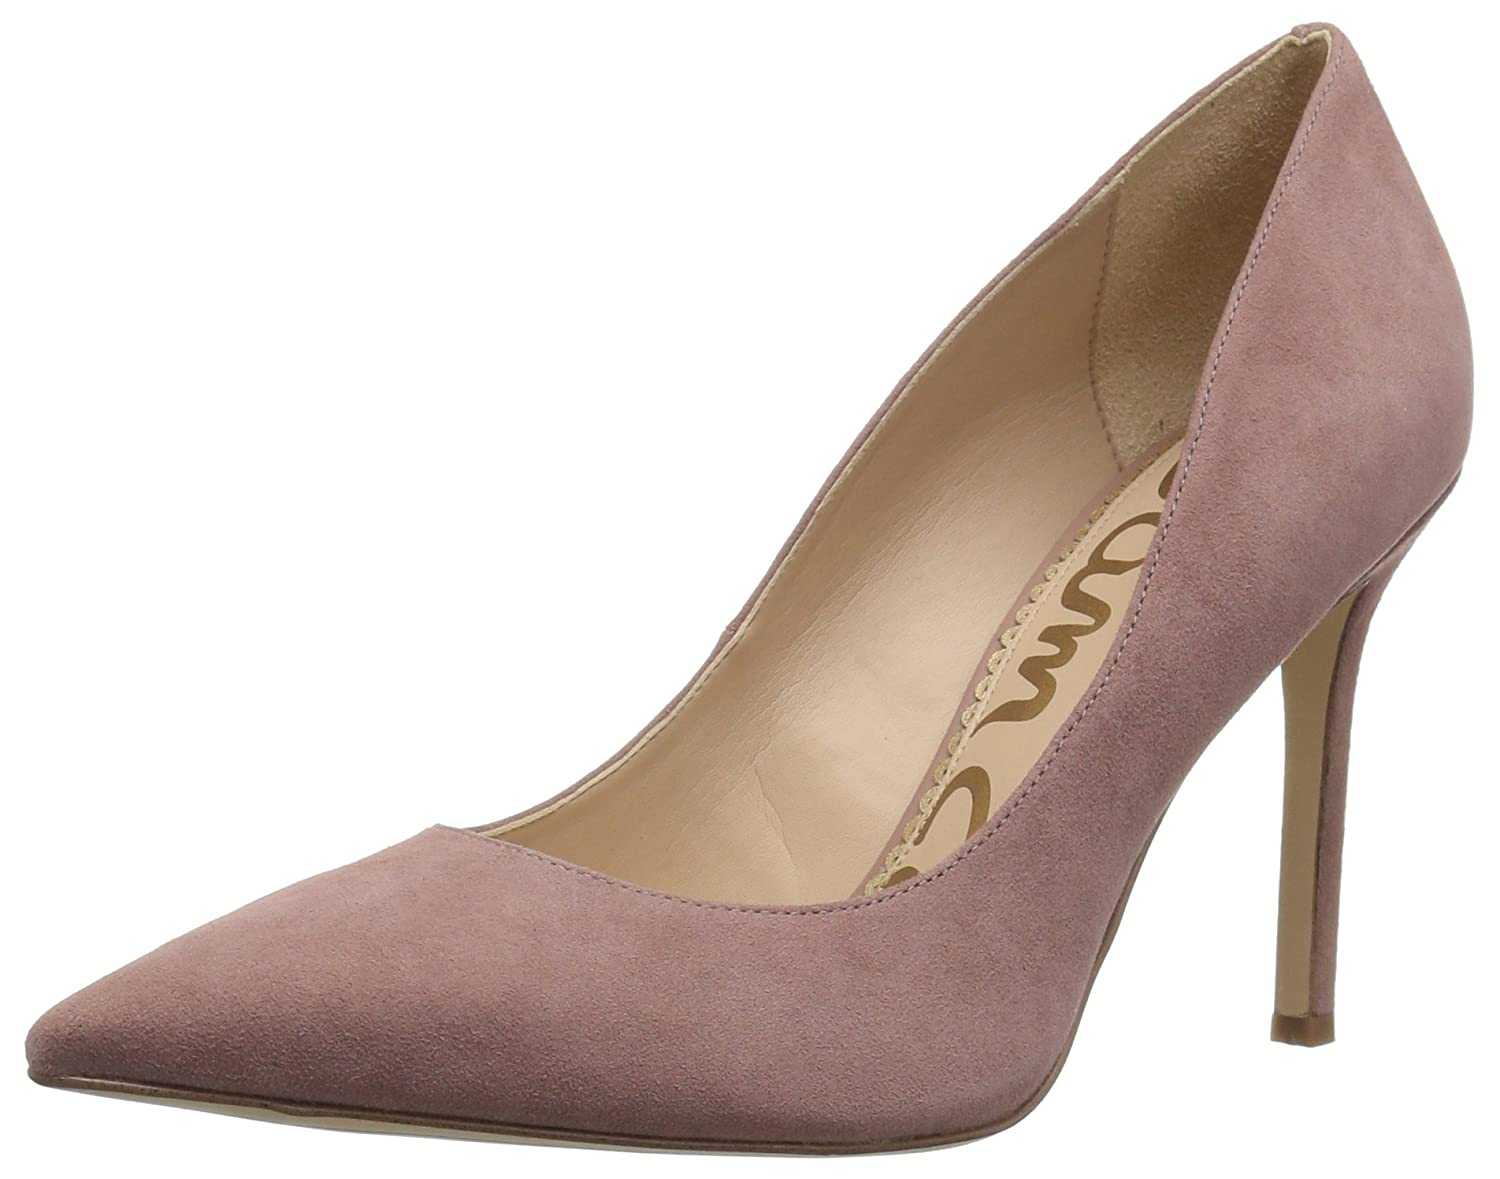 Sam Edelman Women's Hazel Pump B073DQKSMP 8 B(M) US|Dusty Rose Suede